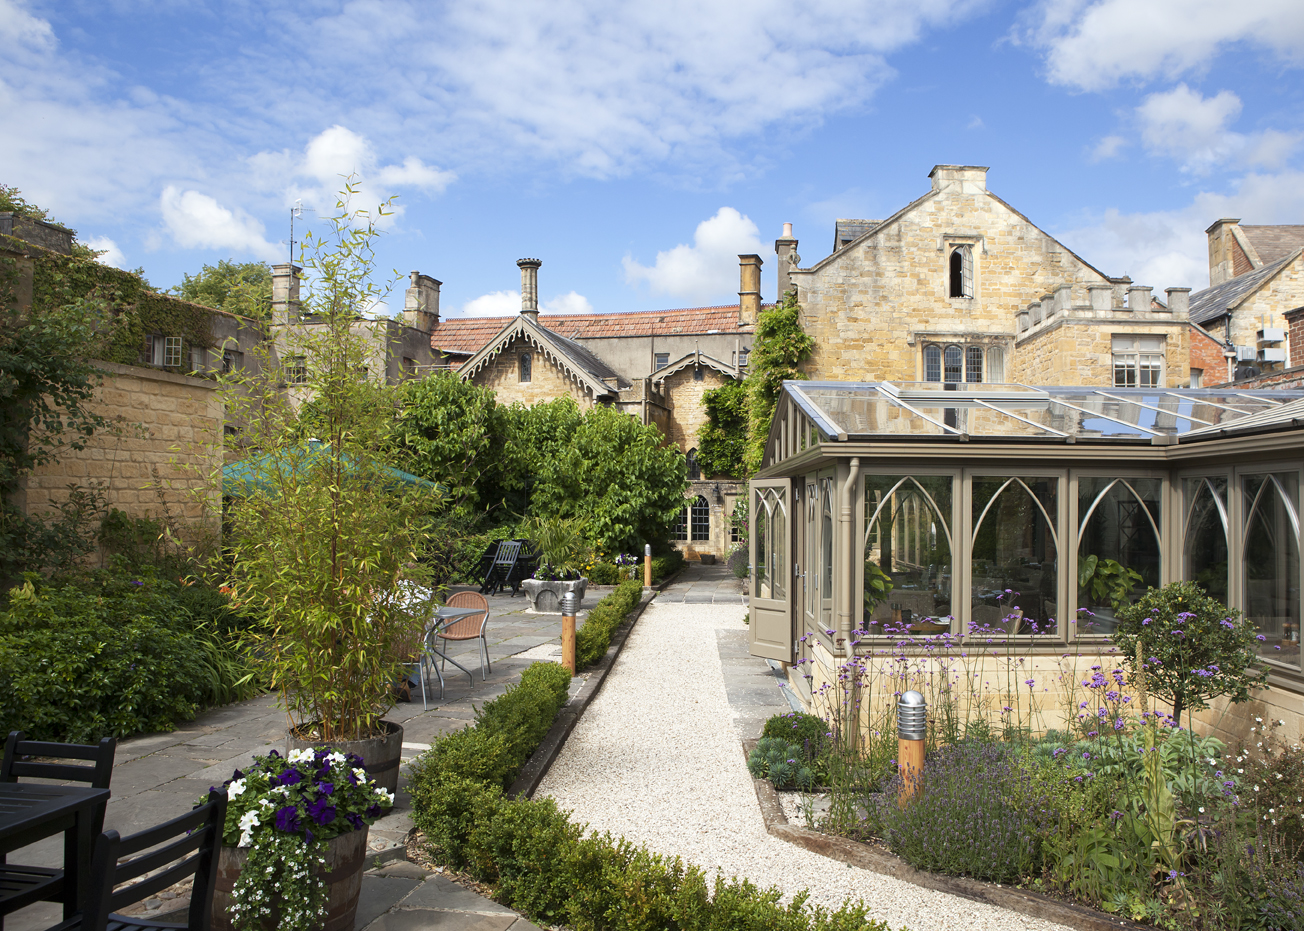 Wedding Photographer Manor House Hotel Moreton In Marsh Cotswolds